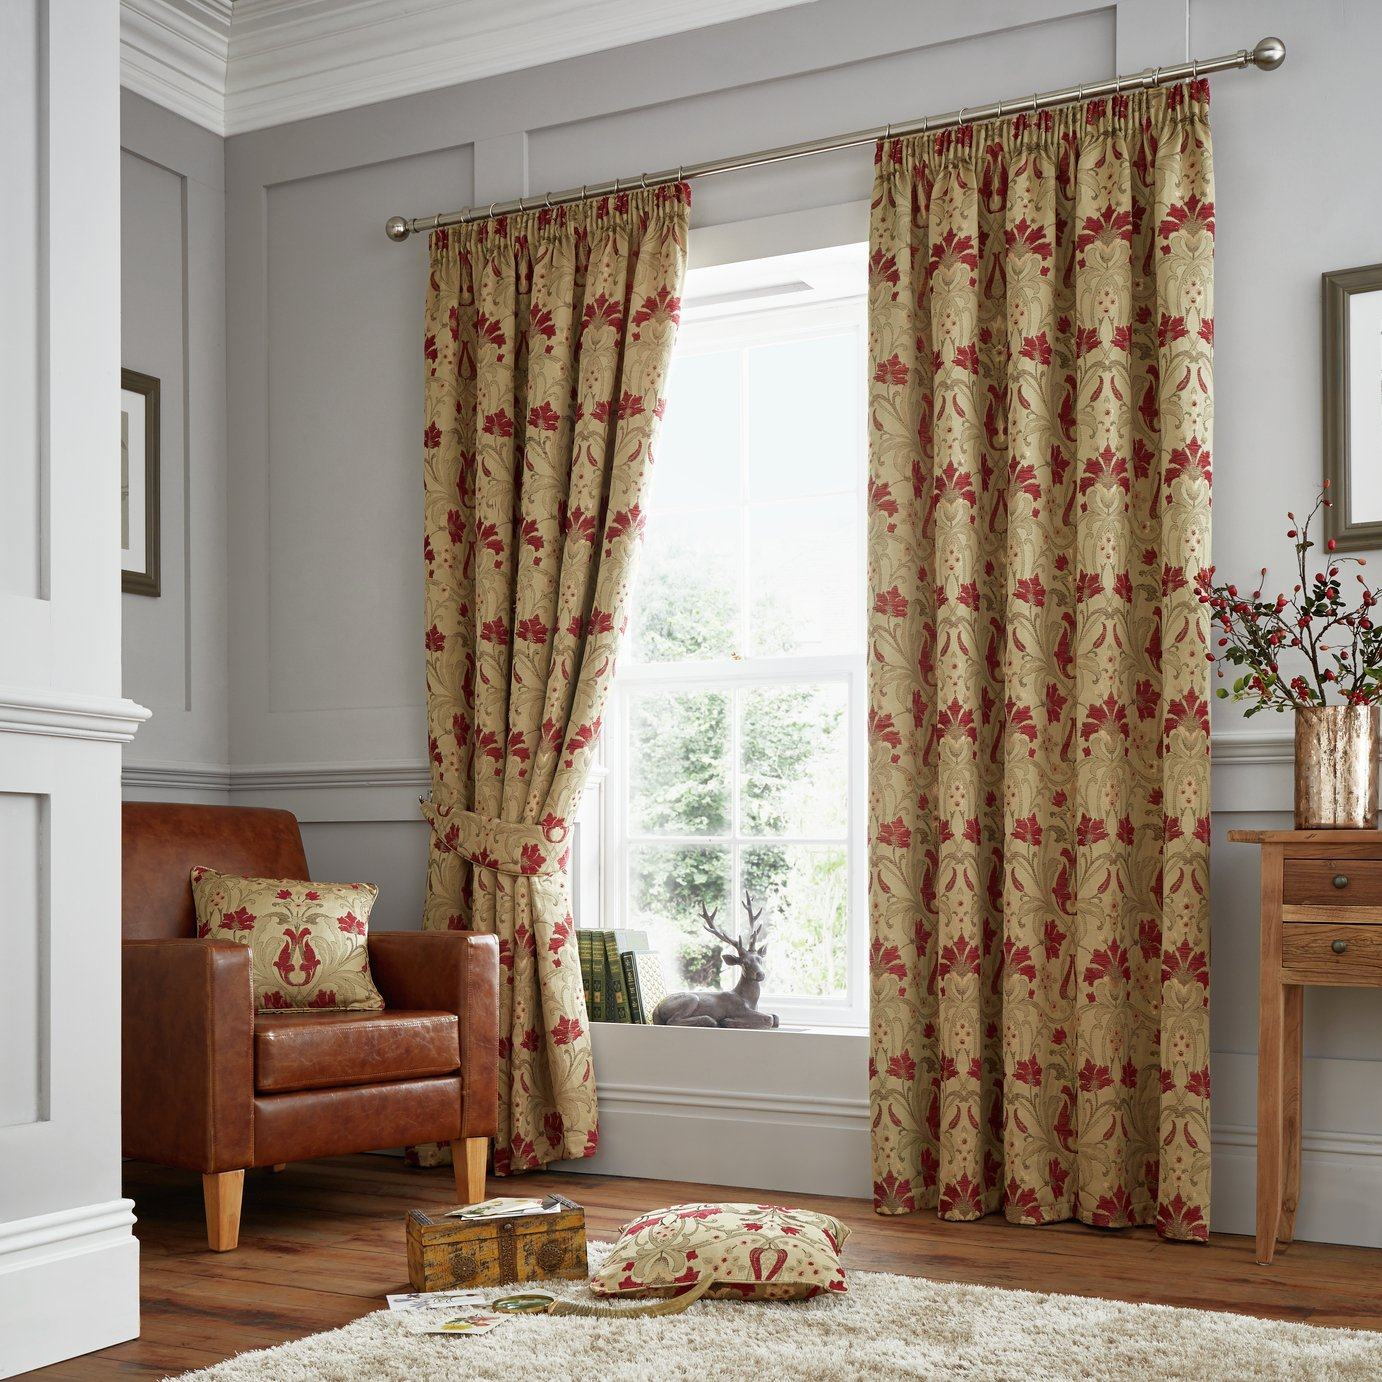 Image of Curtina Burford Curtains - 229x229cm - Red and Gold